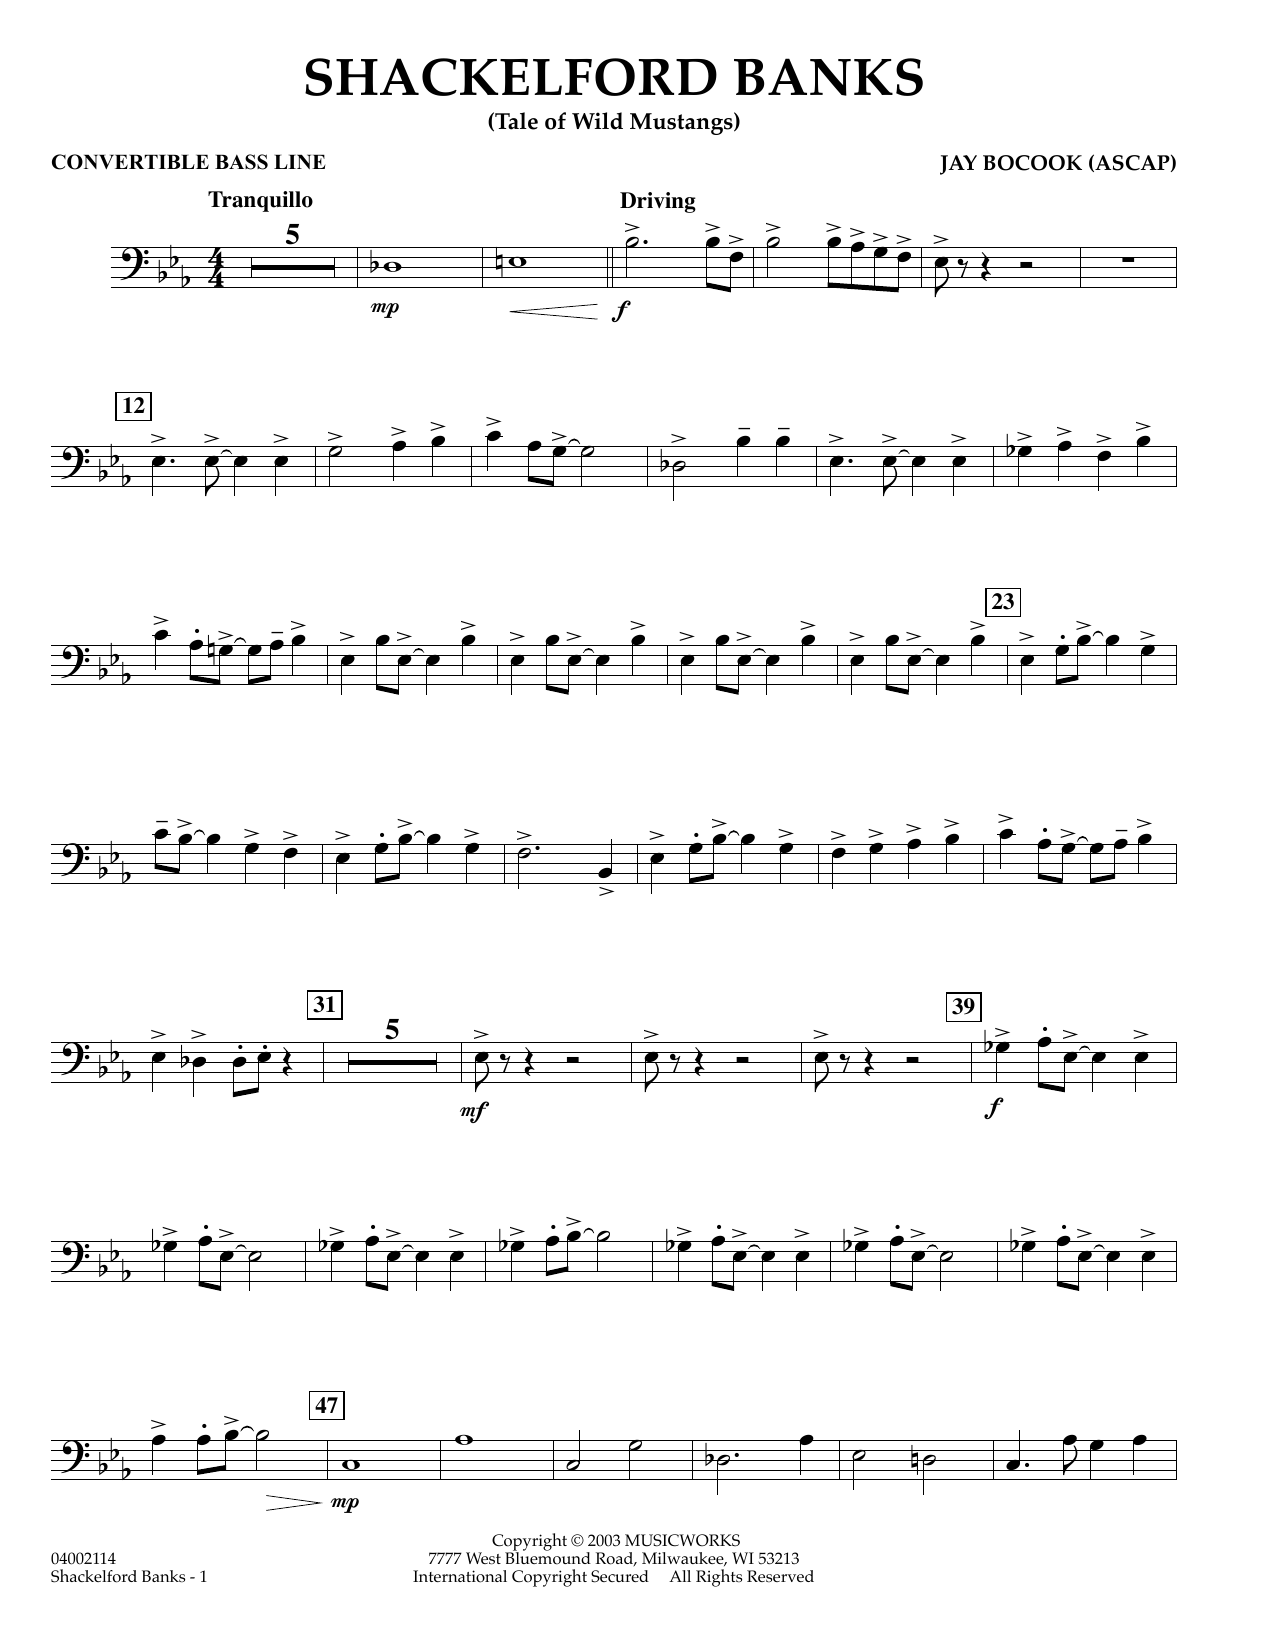 Jay Bocook Shackelford Banks - Convertible Bass Line sheet music preview music notes and score for Concert Band including 2 page(s)